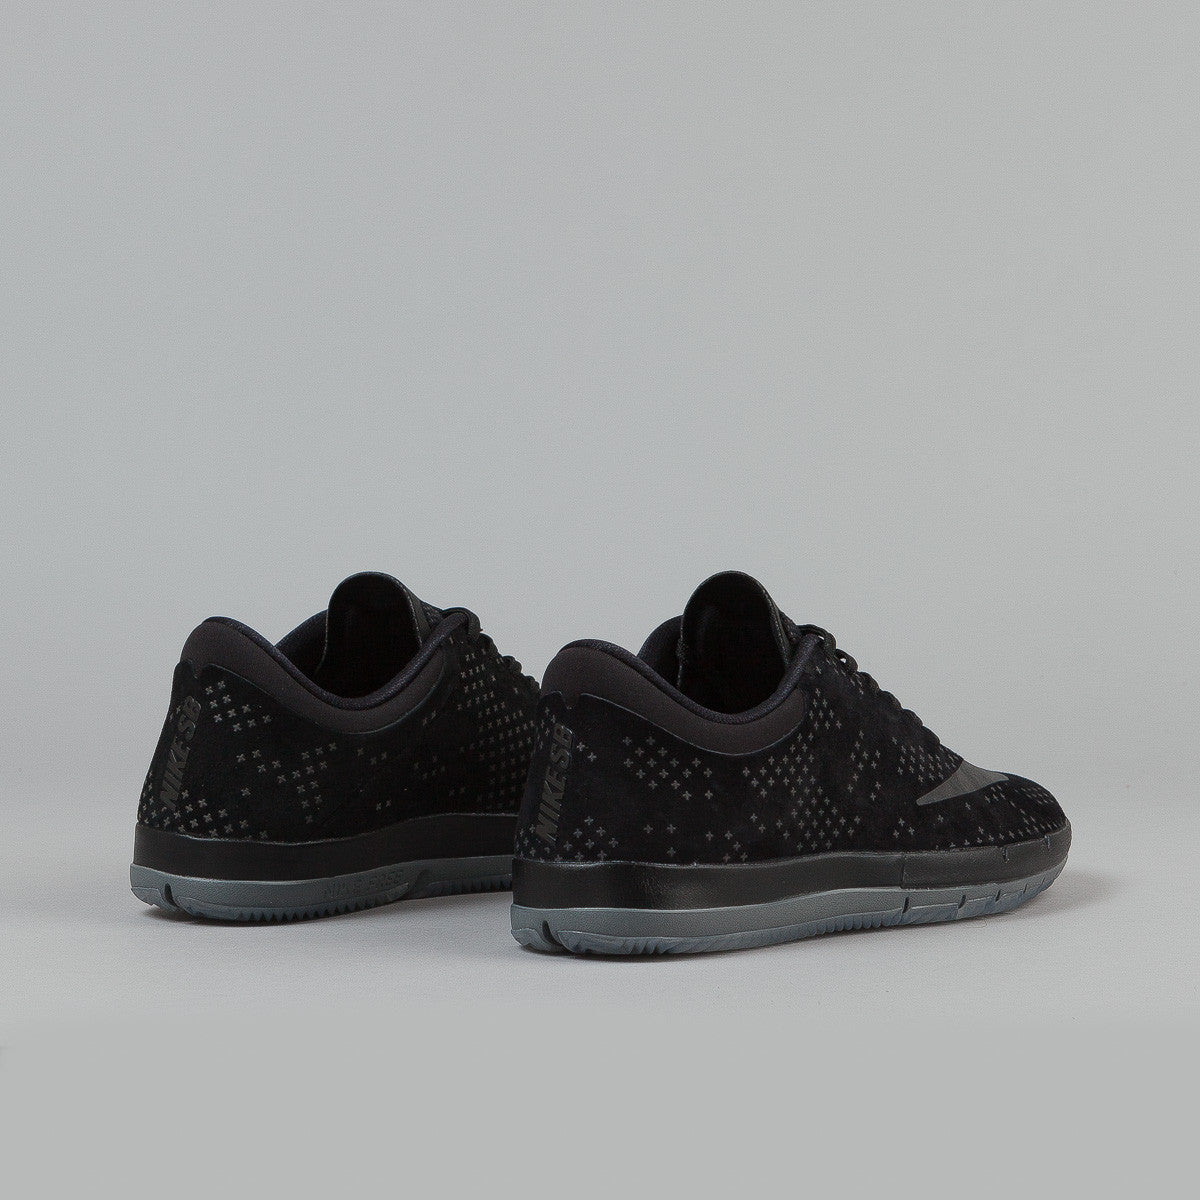 Nike SB Nike SB Free Premium Flash - Black / Black - Clear